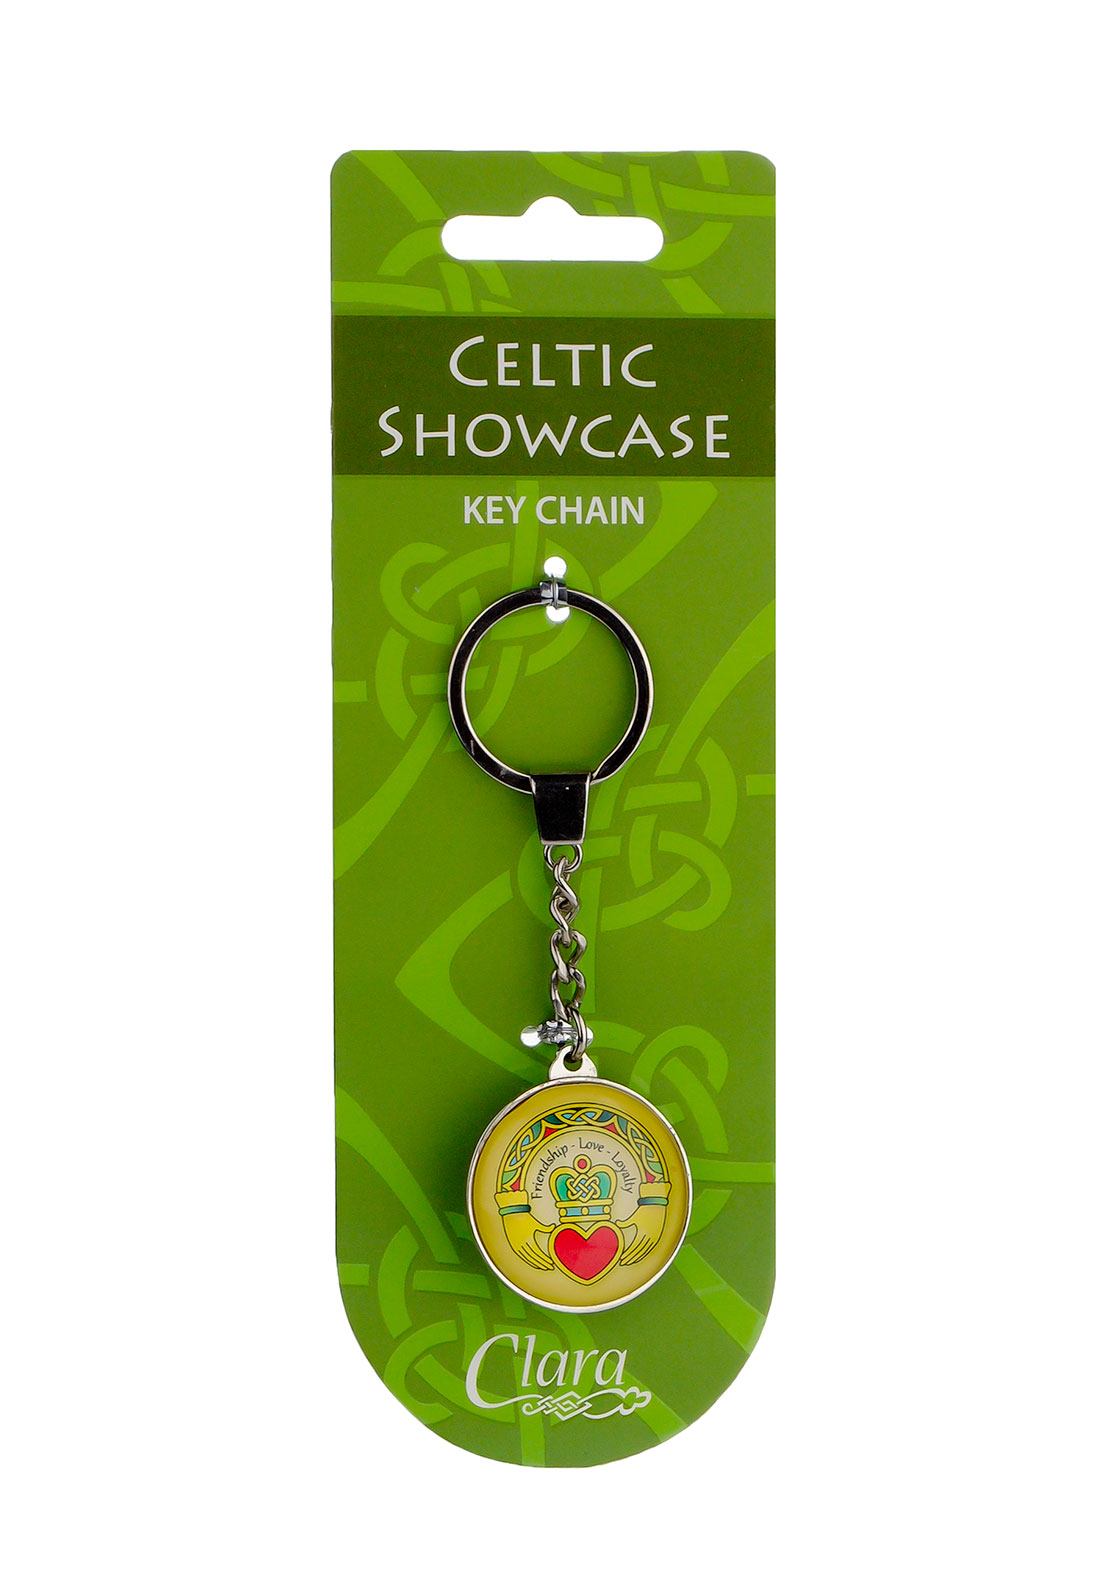 Royal Tara Clara Celtic Showcase Claddagh Key Chain, Silver